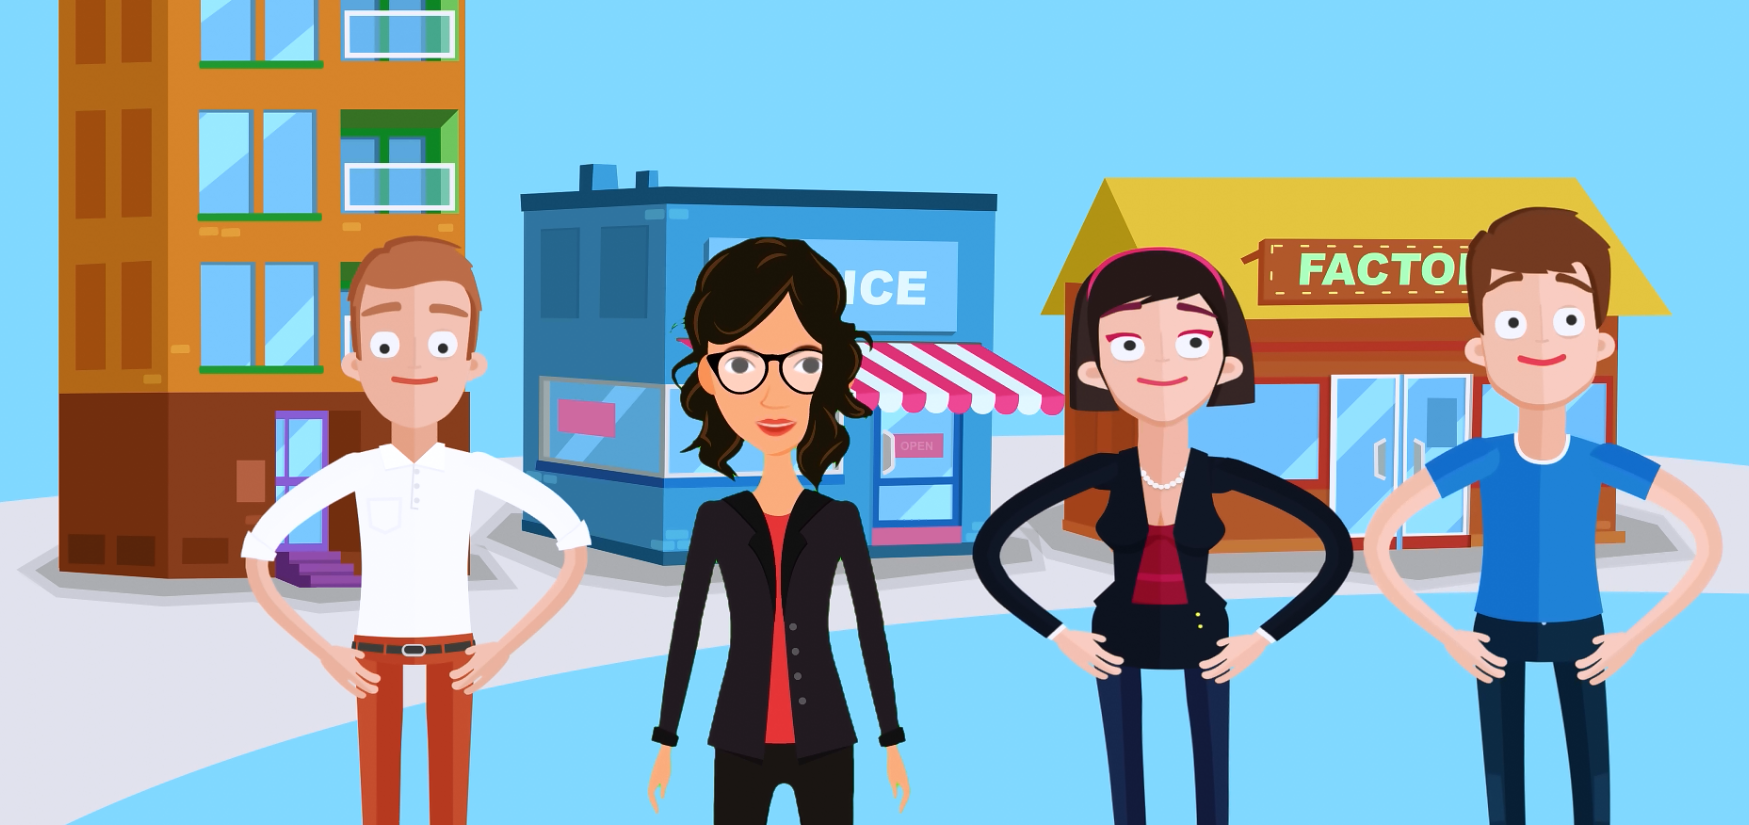 create a 1 minute explainer video for your business